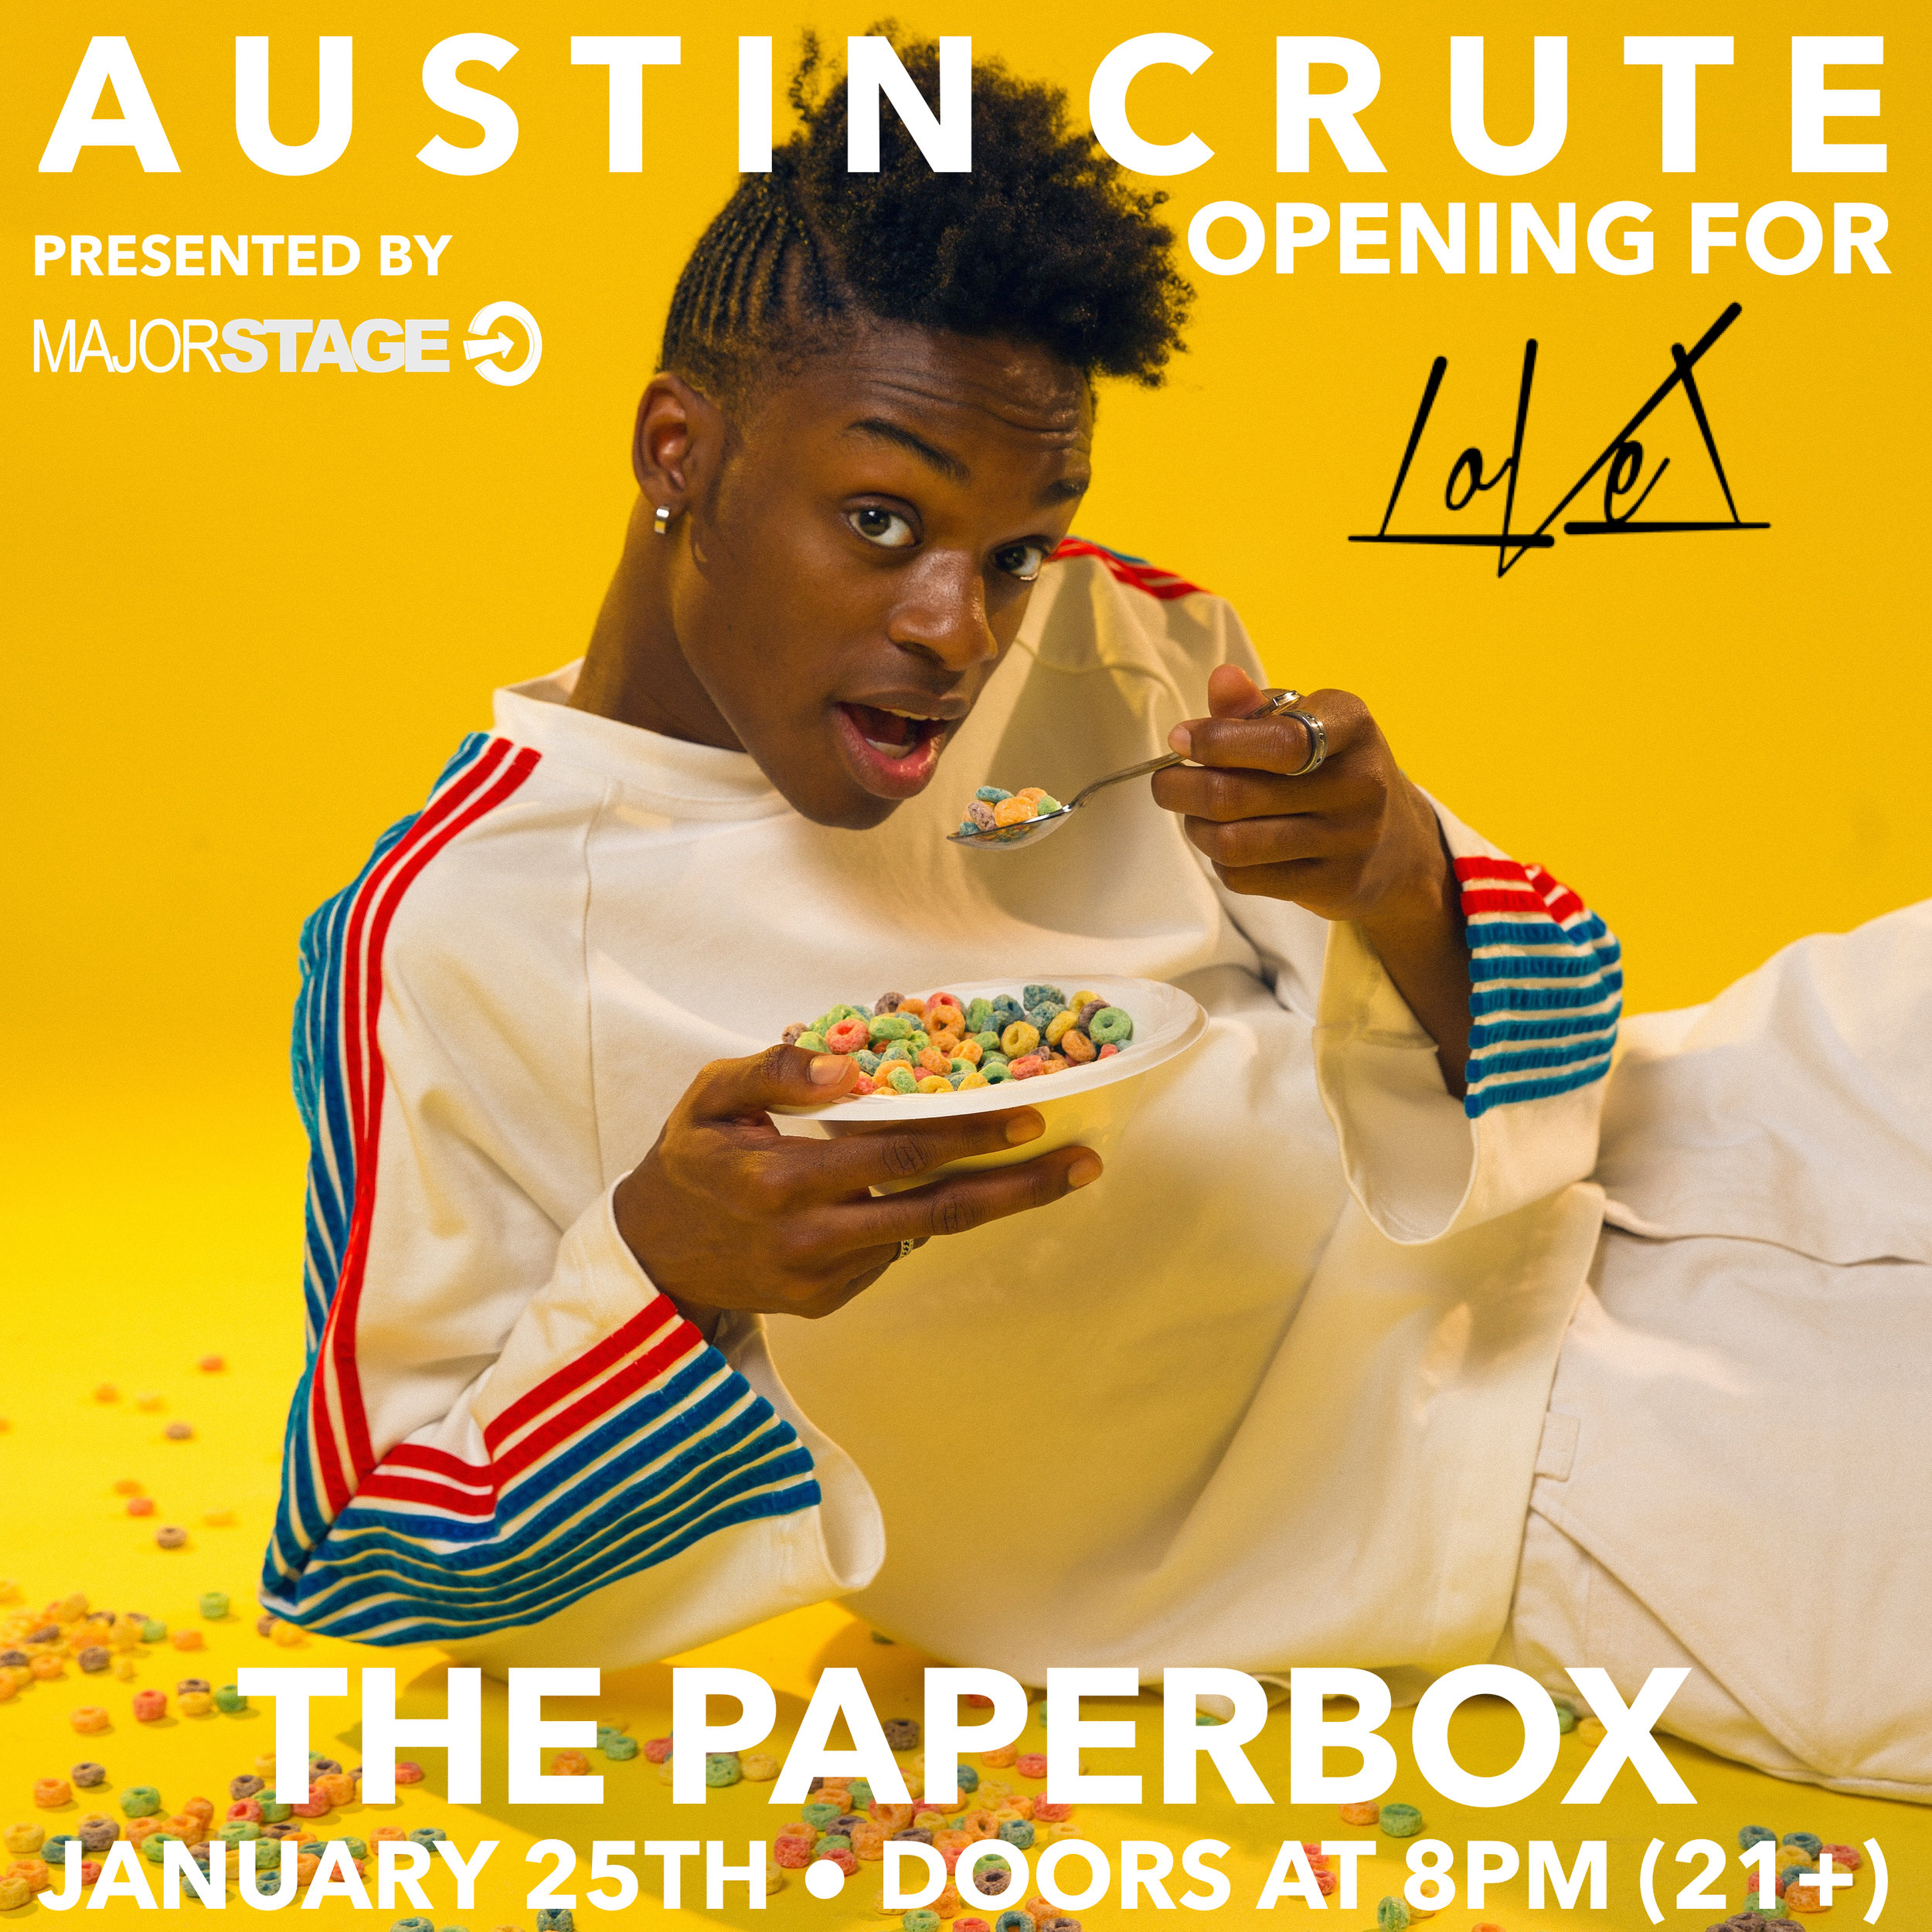 THE PAPER BOX - BROOKLYN, NYJANUARY 25TH 2018